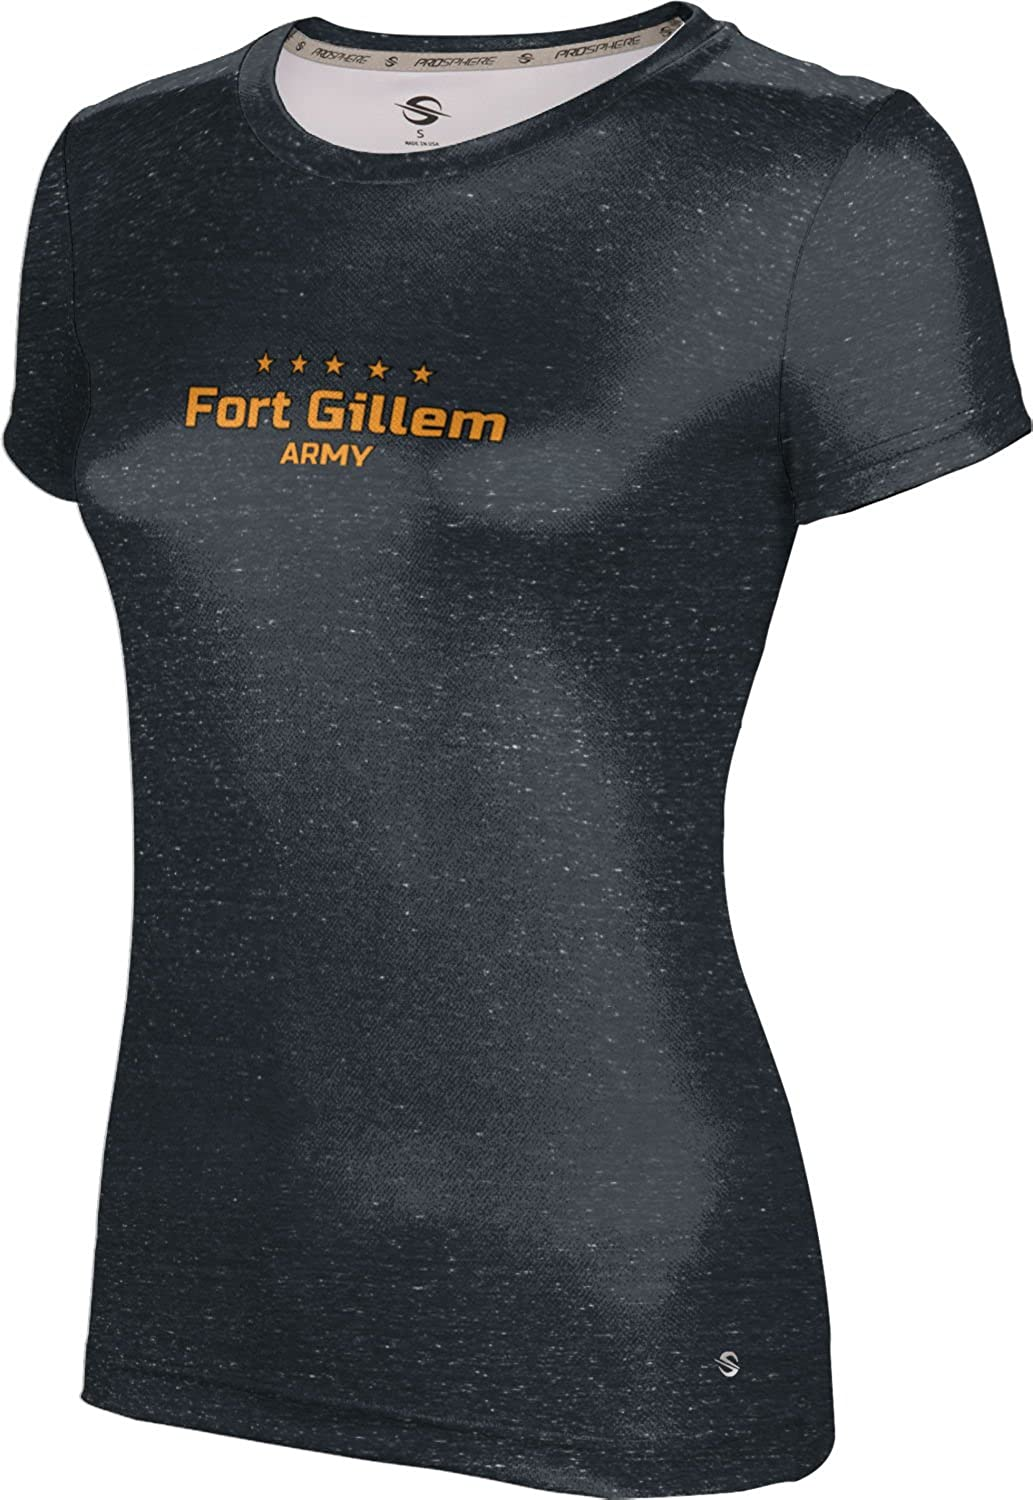 ProSphere Girls' Fort Gillem Military Heather Shirt (Apparel)